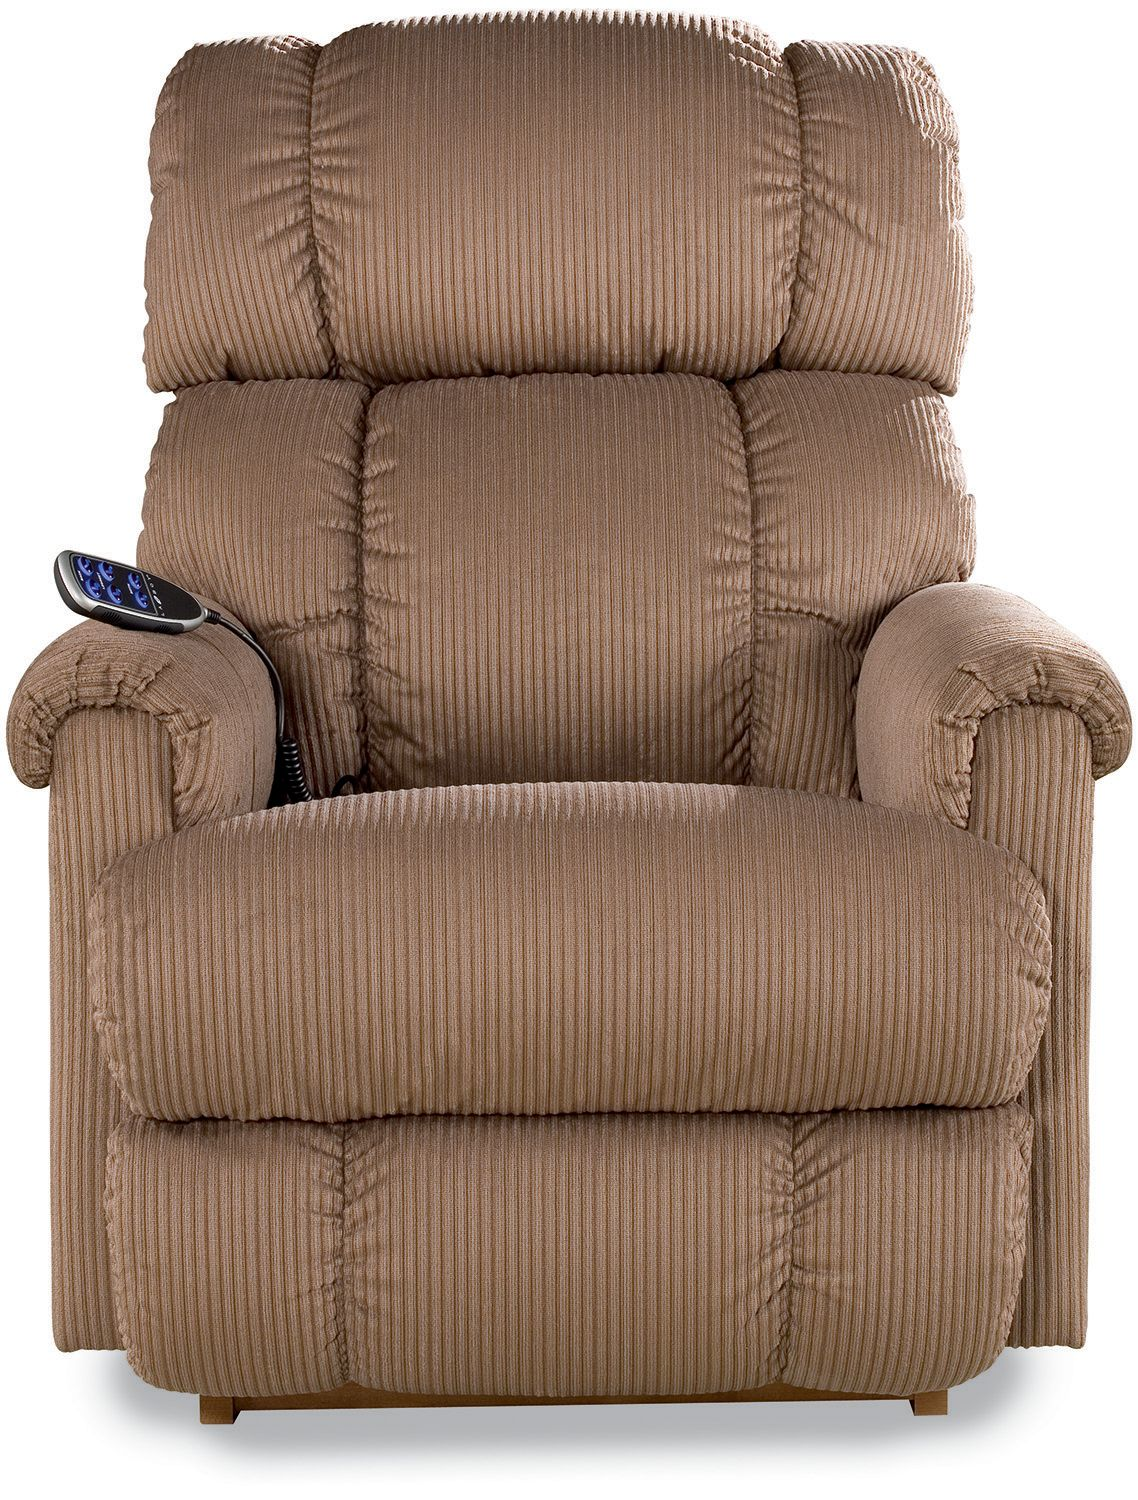 La-Z-Boy SNUGGLE POWER RECLINER CASHMERE